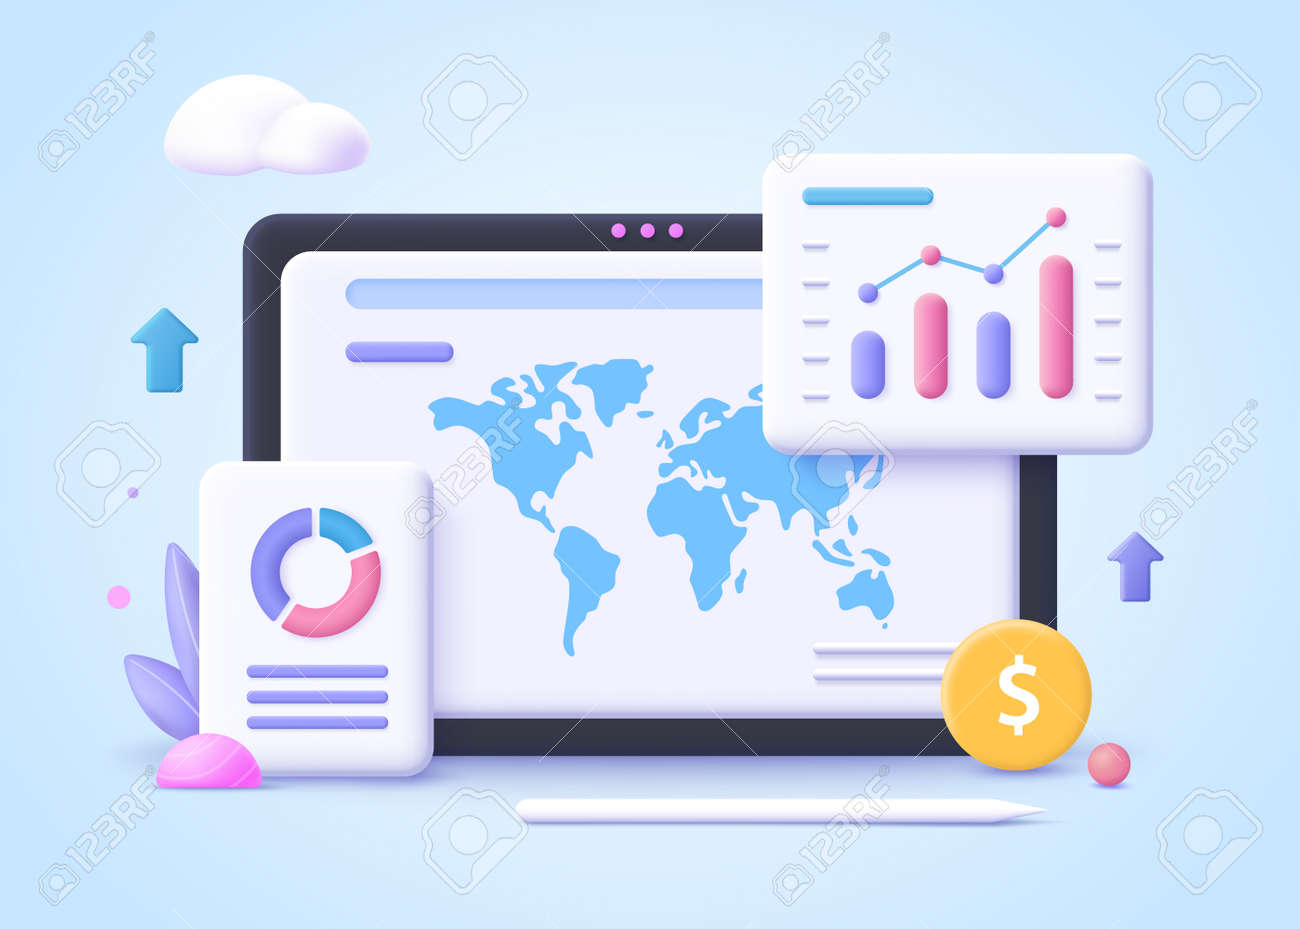 Concept of business trend. Trend analysis and project promotion. 3d vector illustration. - 168737126